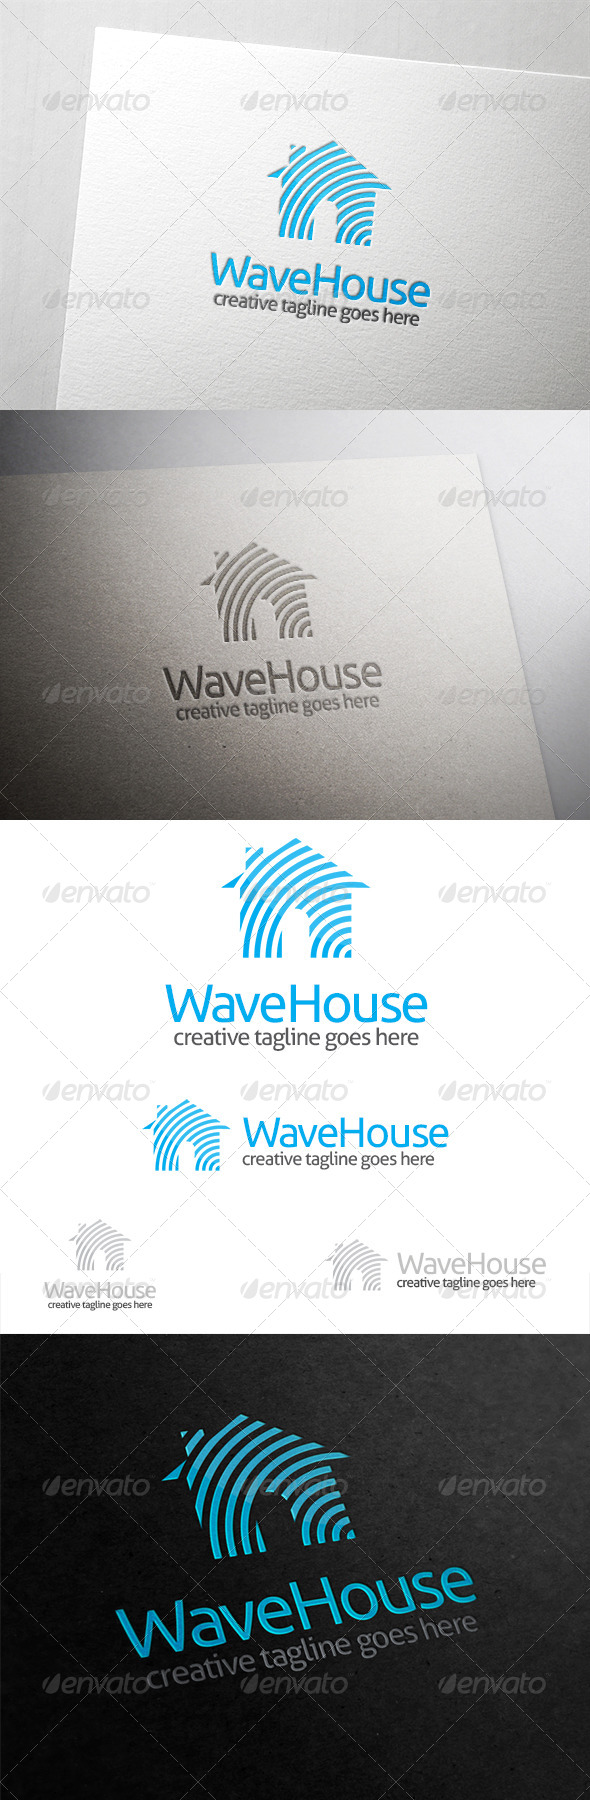 Wave House Logo - Buildings Logo Templates